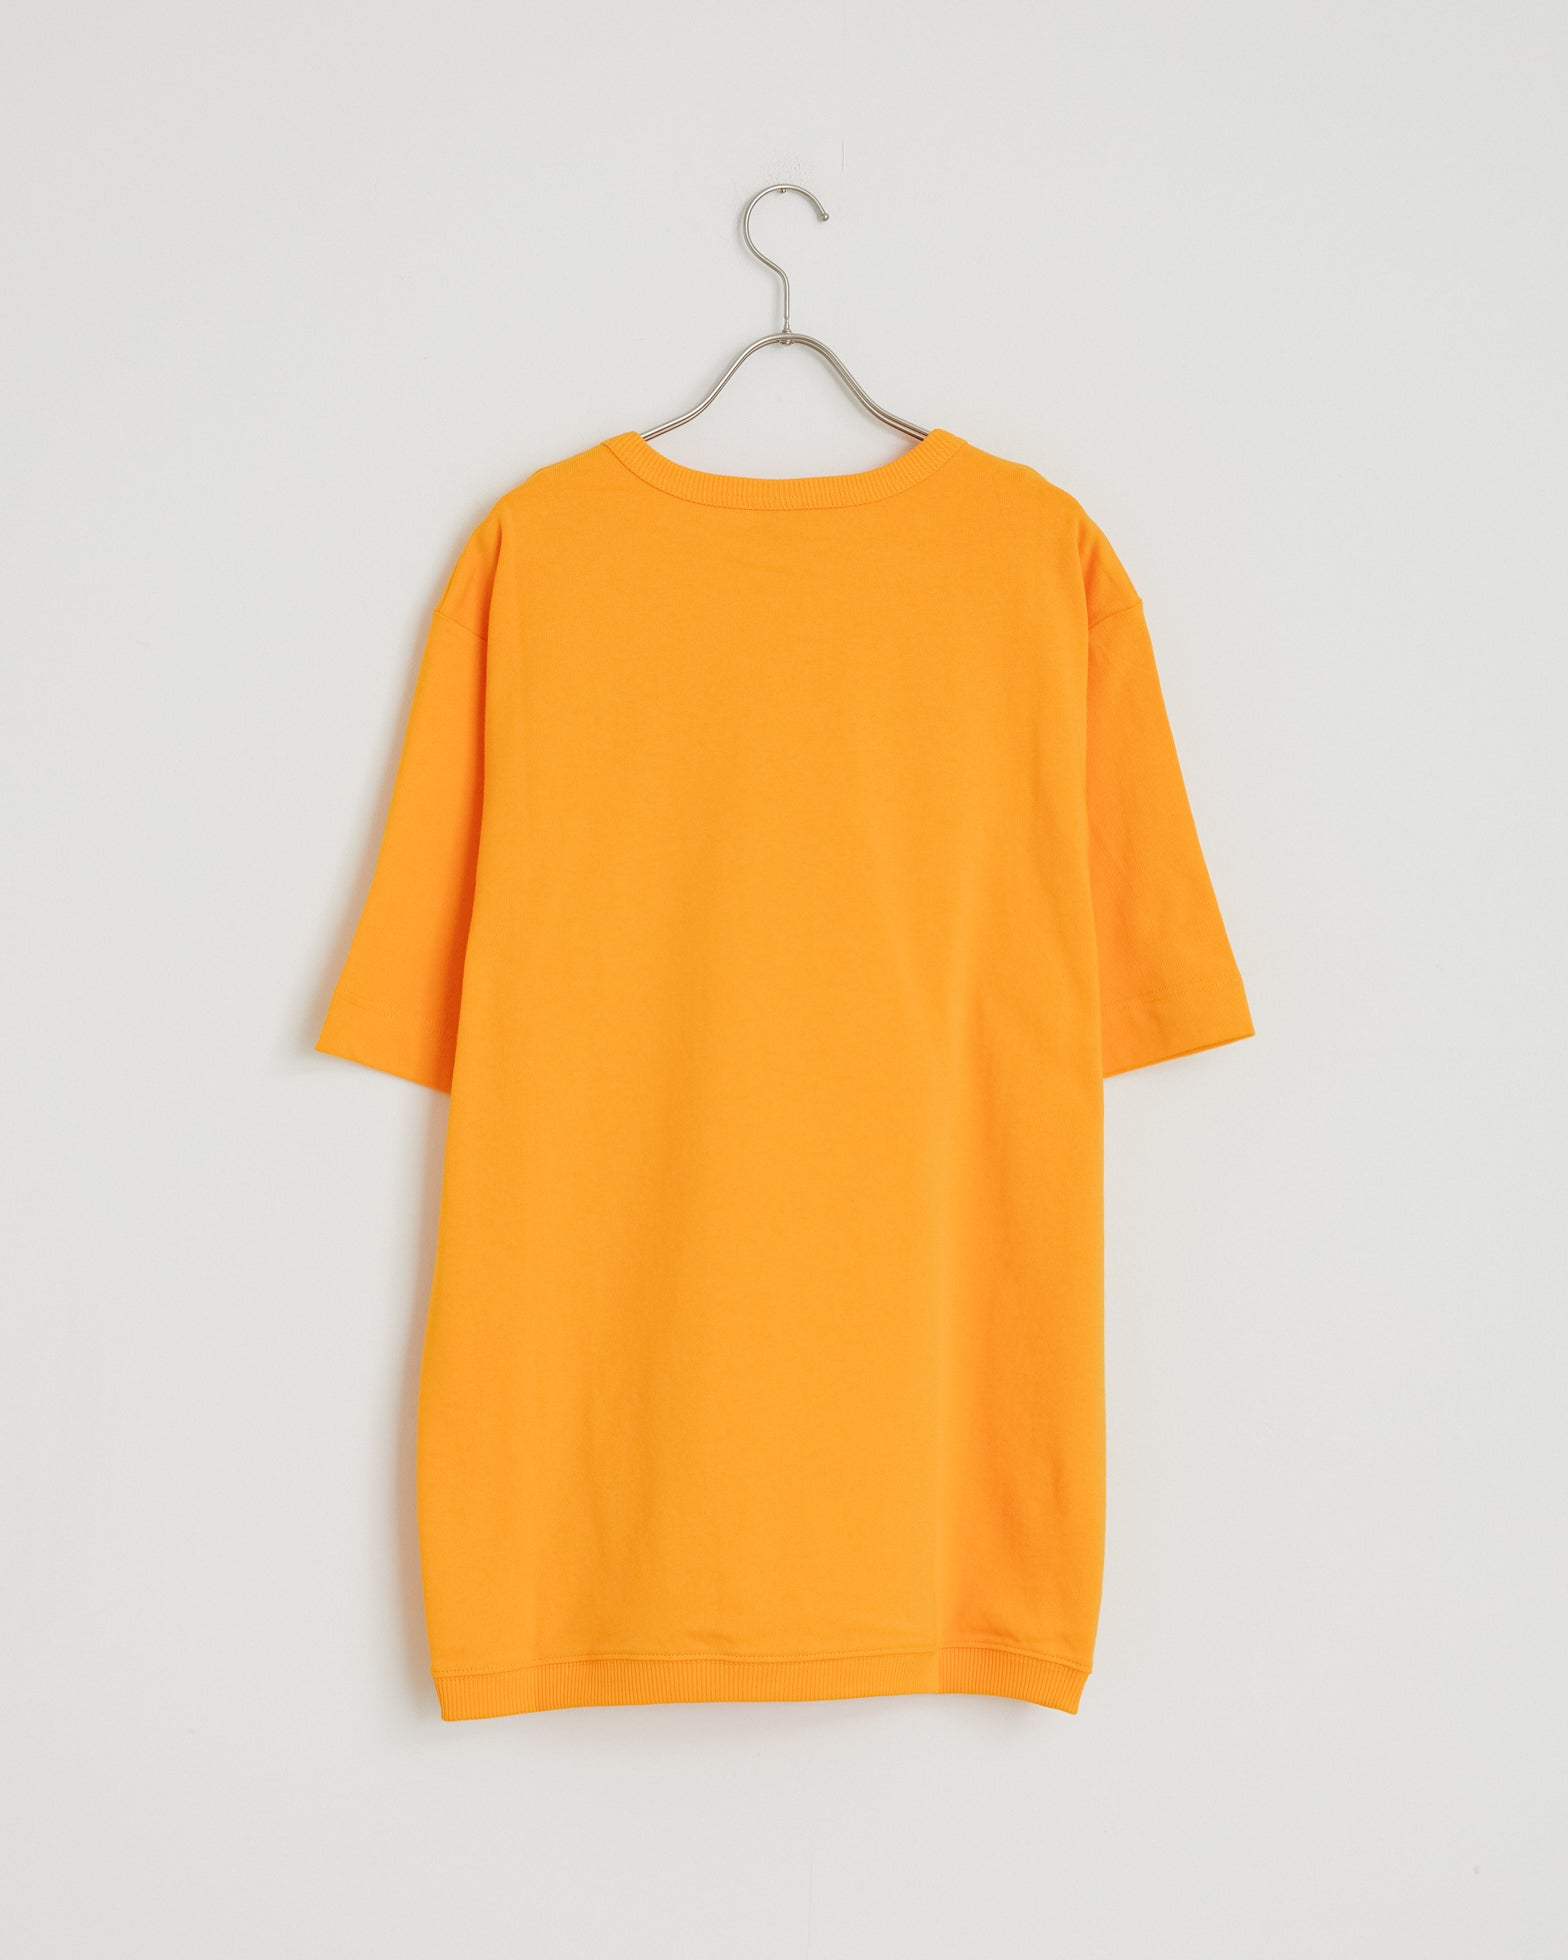 Hobis 1604 T-Shirt in Ora